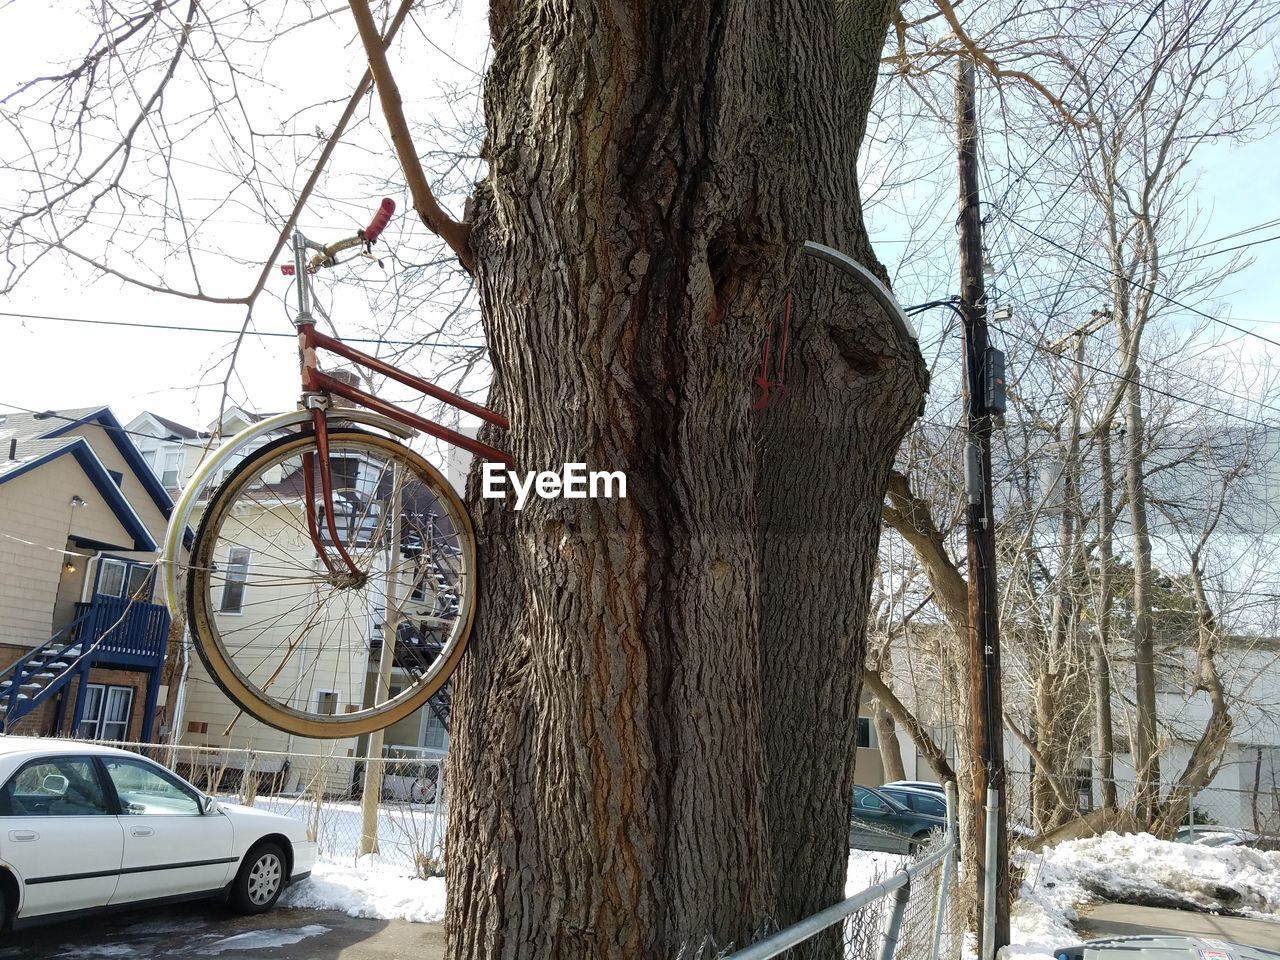 tree trunk, tree, bare tree, branch, snow, winter, day, outdoors, mode of transport, no people, nature, land vehicle, sky